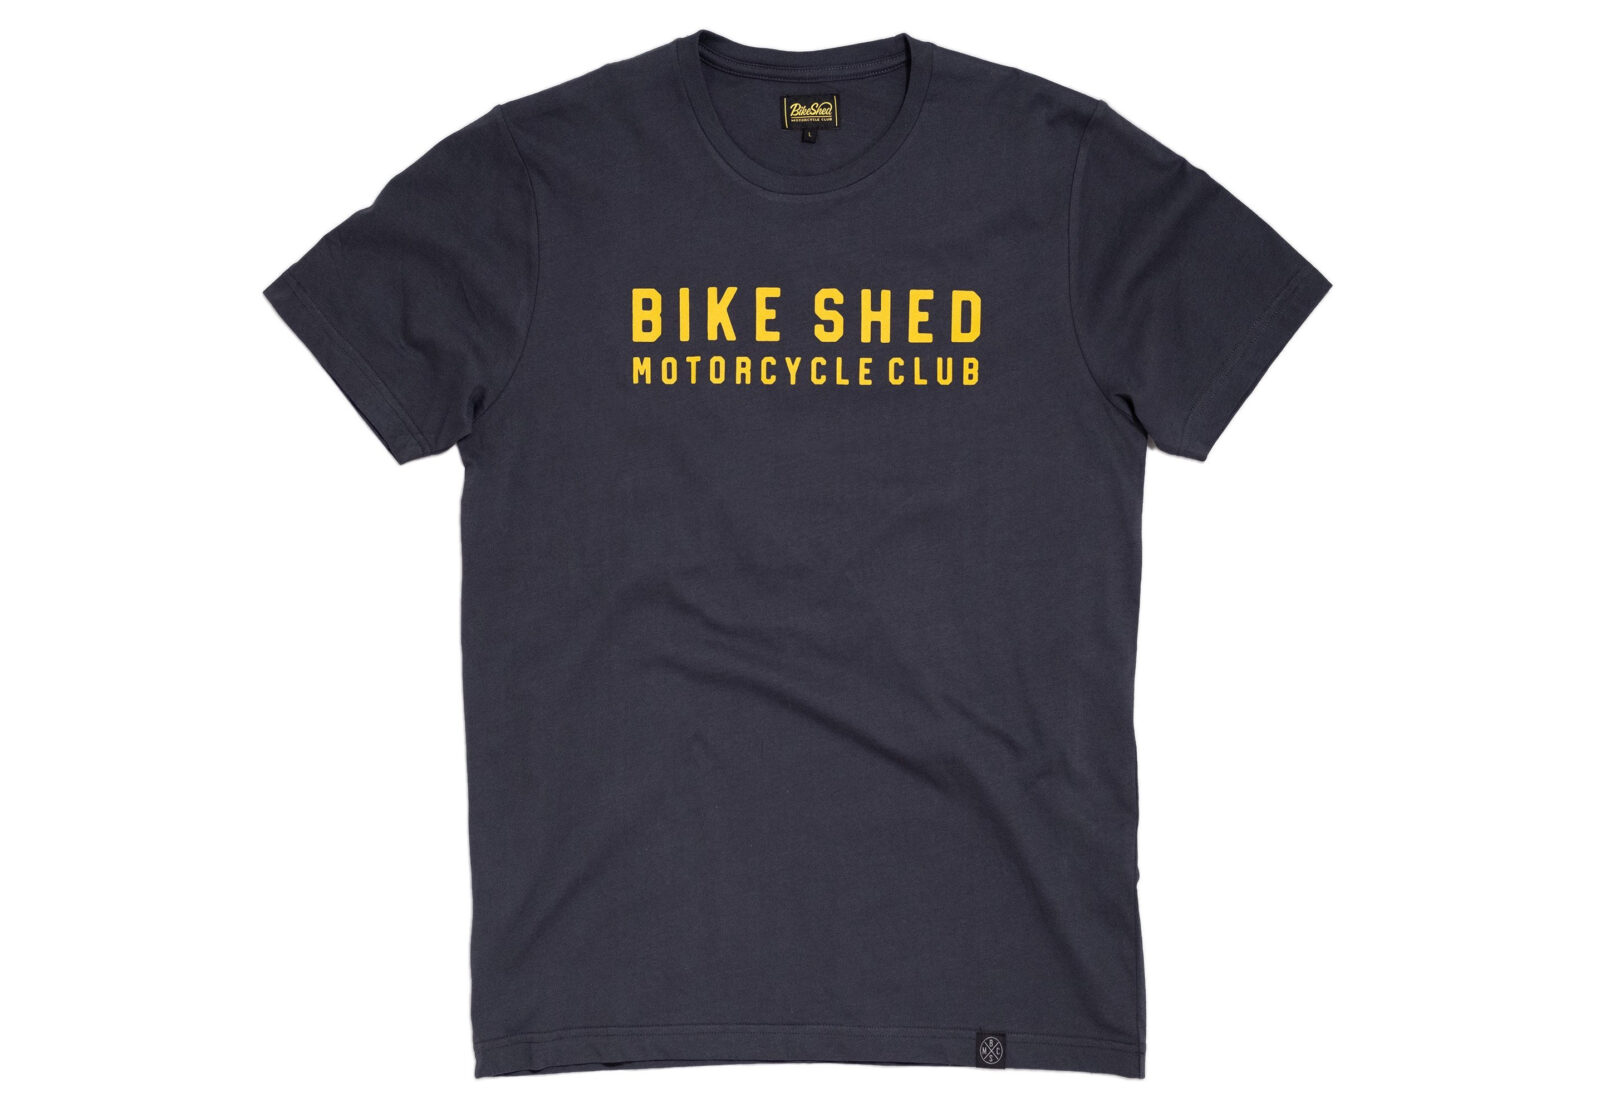 Bike Shed Motorcycle Club Brick T-Shirt